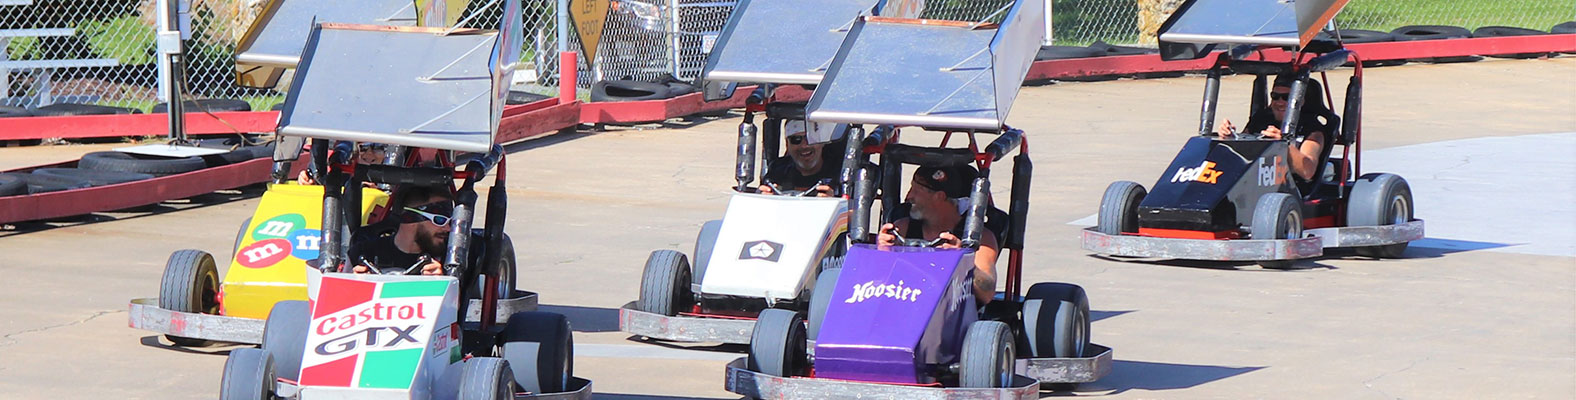 Adults racing in go-karts